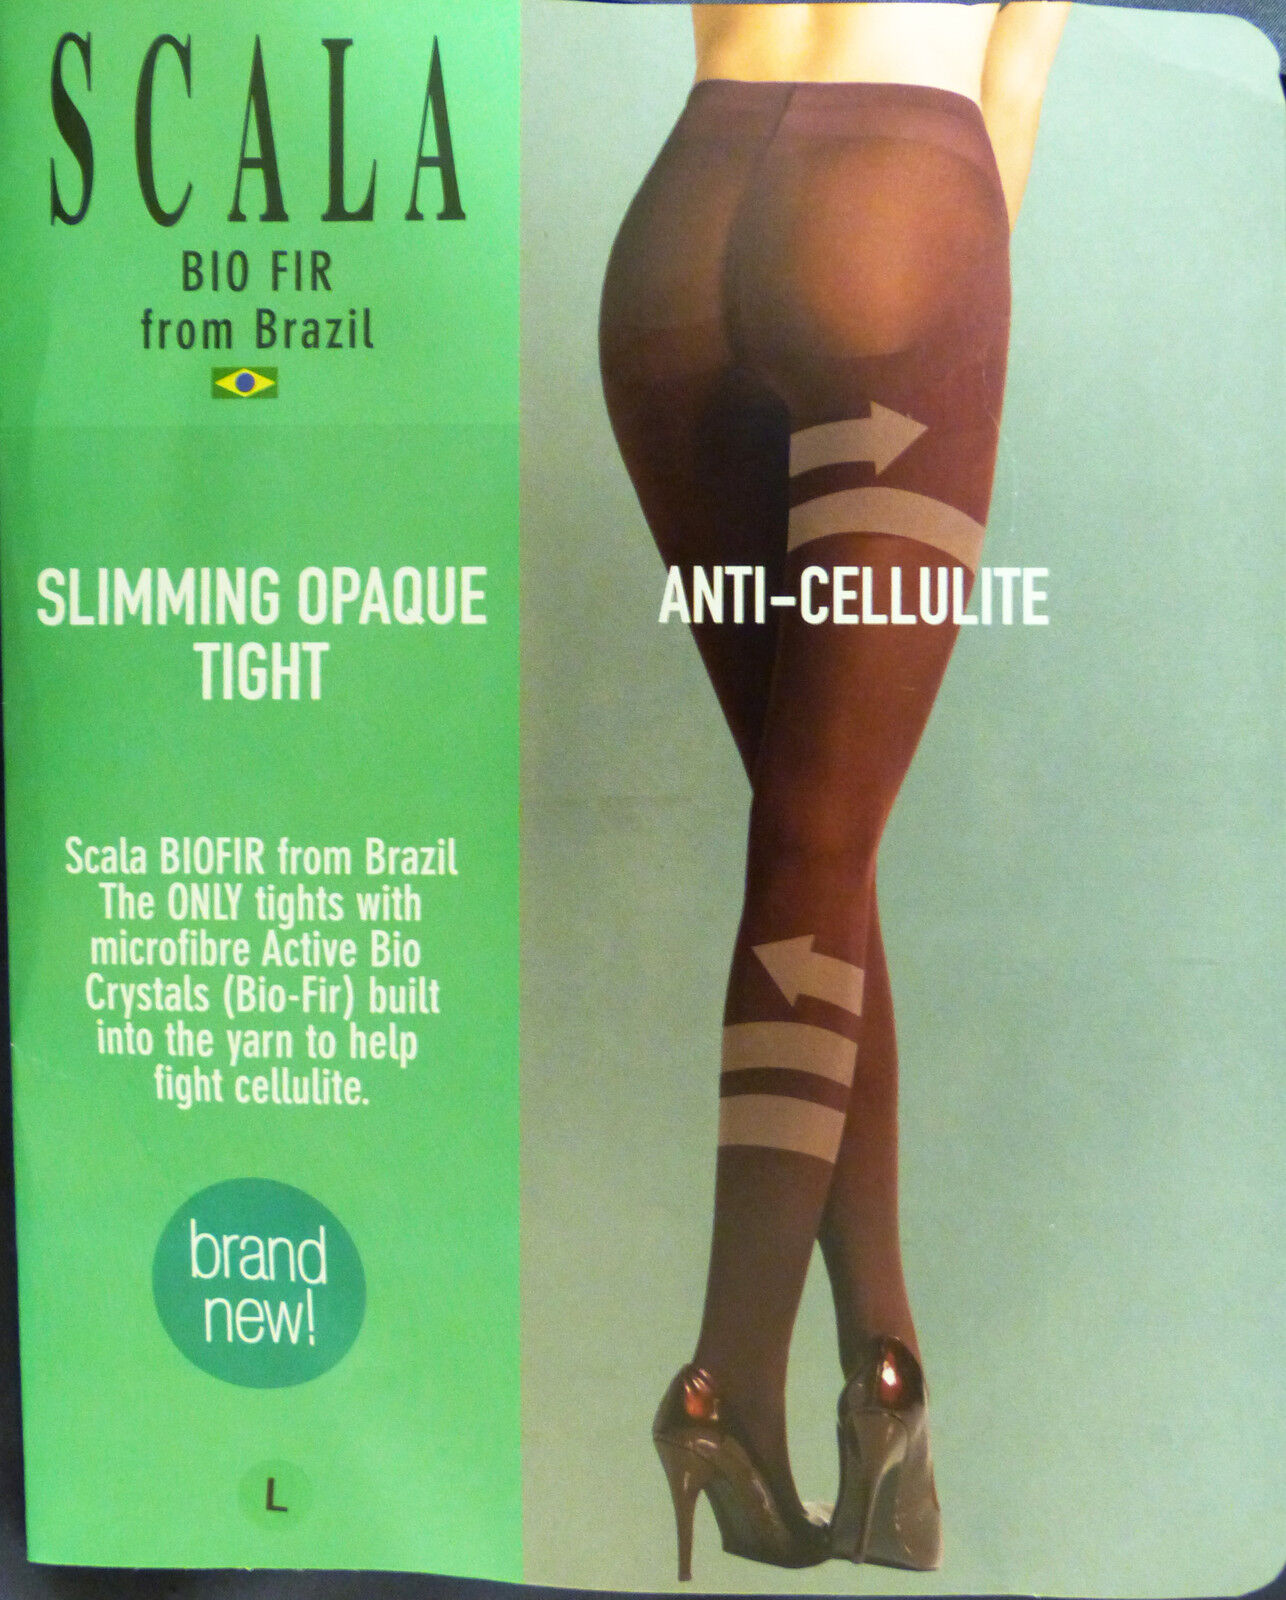 5db2c33e86 Scala Large Size Slimming   Anti-cellulite Shapewear Black Opaque Tights  for sale online